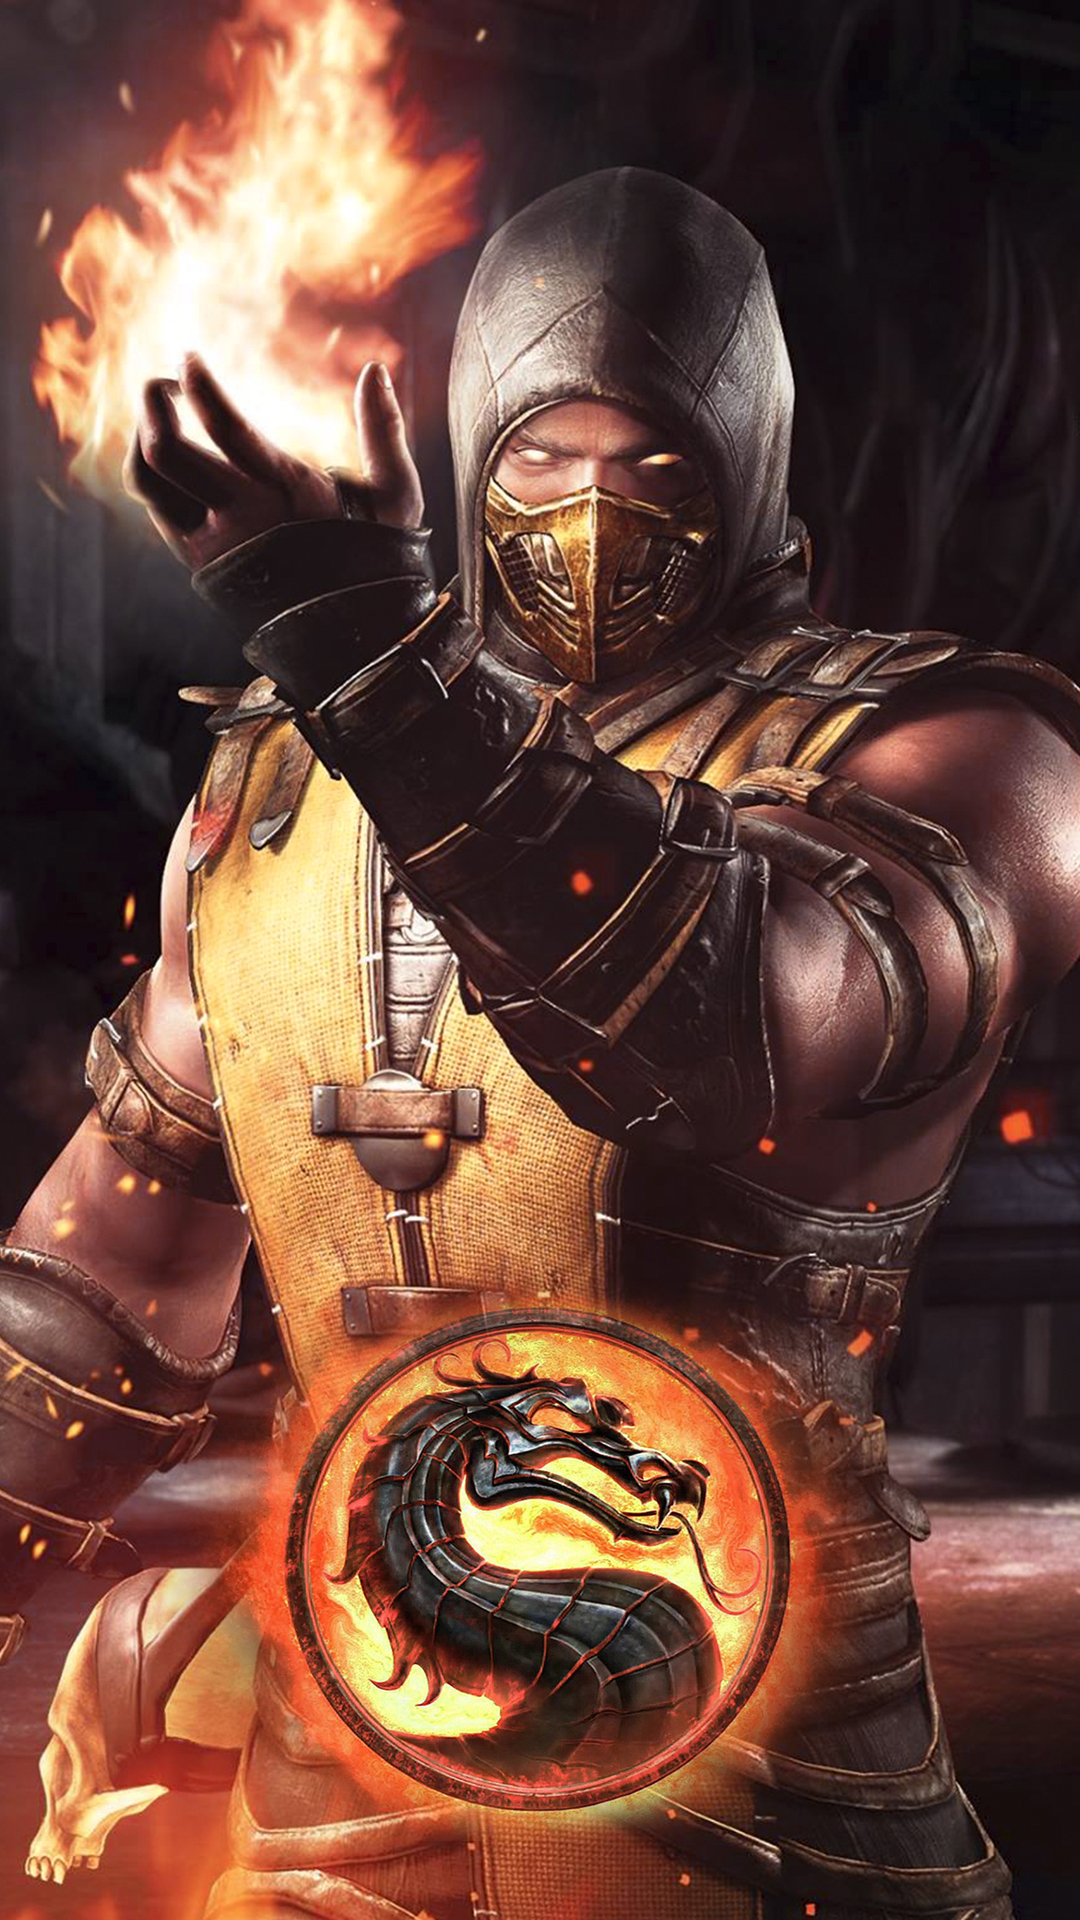 Scorpion Mortal Kombat X Mkx By Jpgraphic On Deviantart